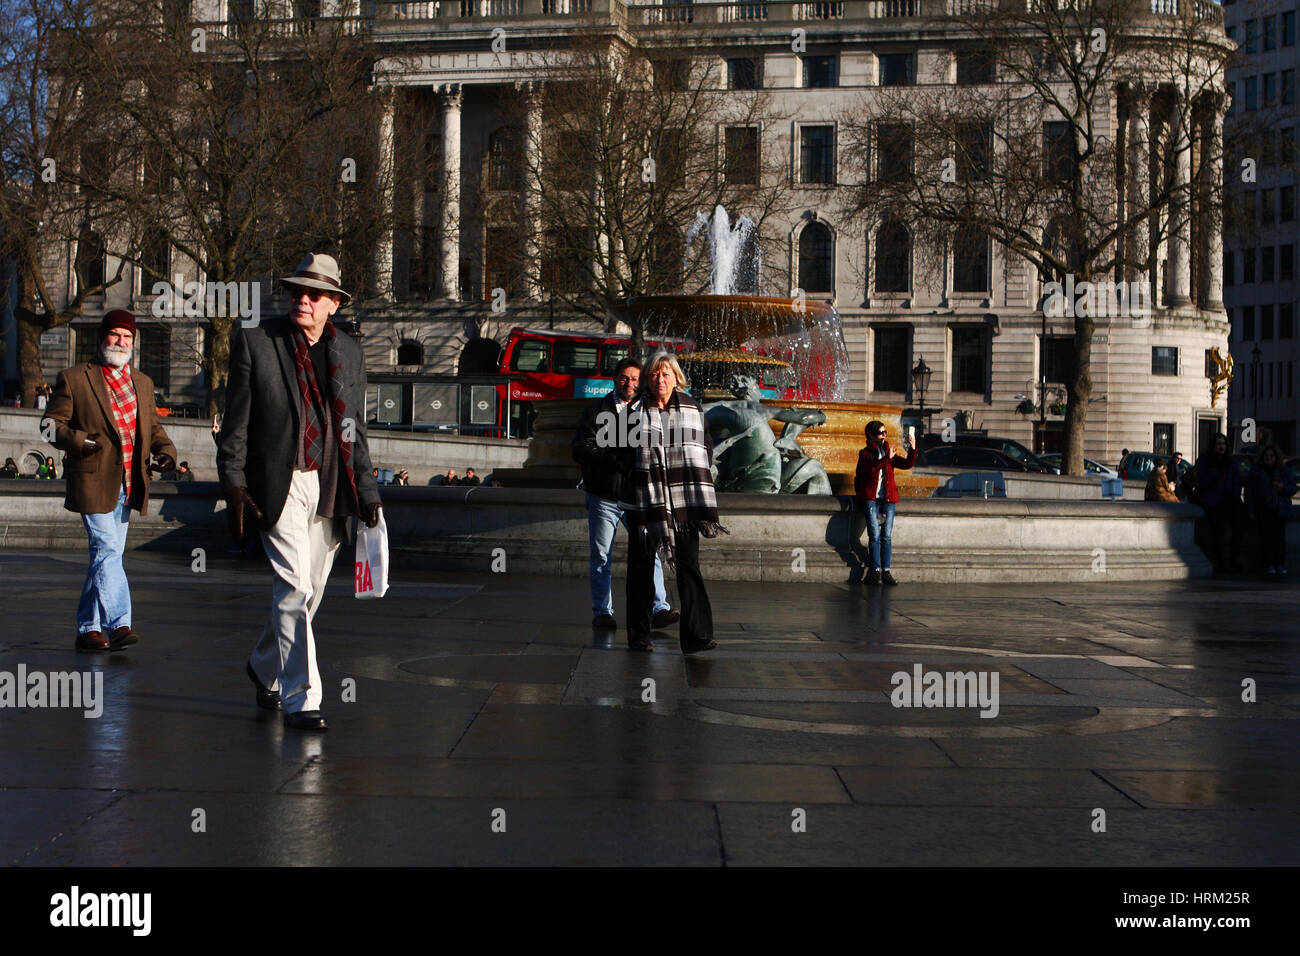 People walking in Trafalgar Square in winter sunshine Stock Photo